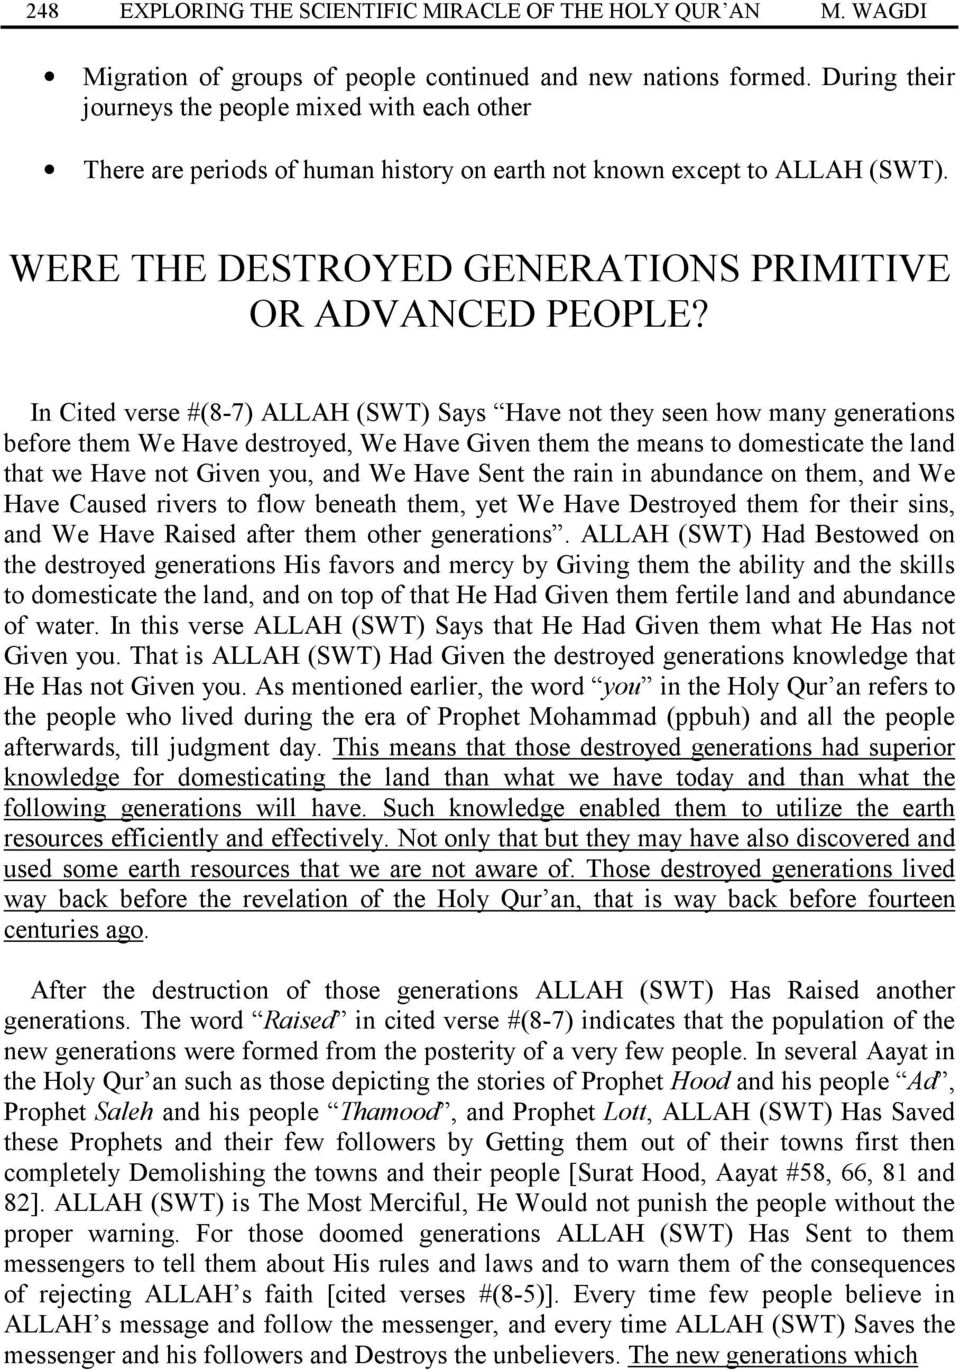 In Cited verse #(8-7) ALLAH (SWT) Says Have not they seen how many generations before them We Have destroyed, We Have Given them the means to domesticate the land that we Have not Given you, and We